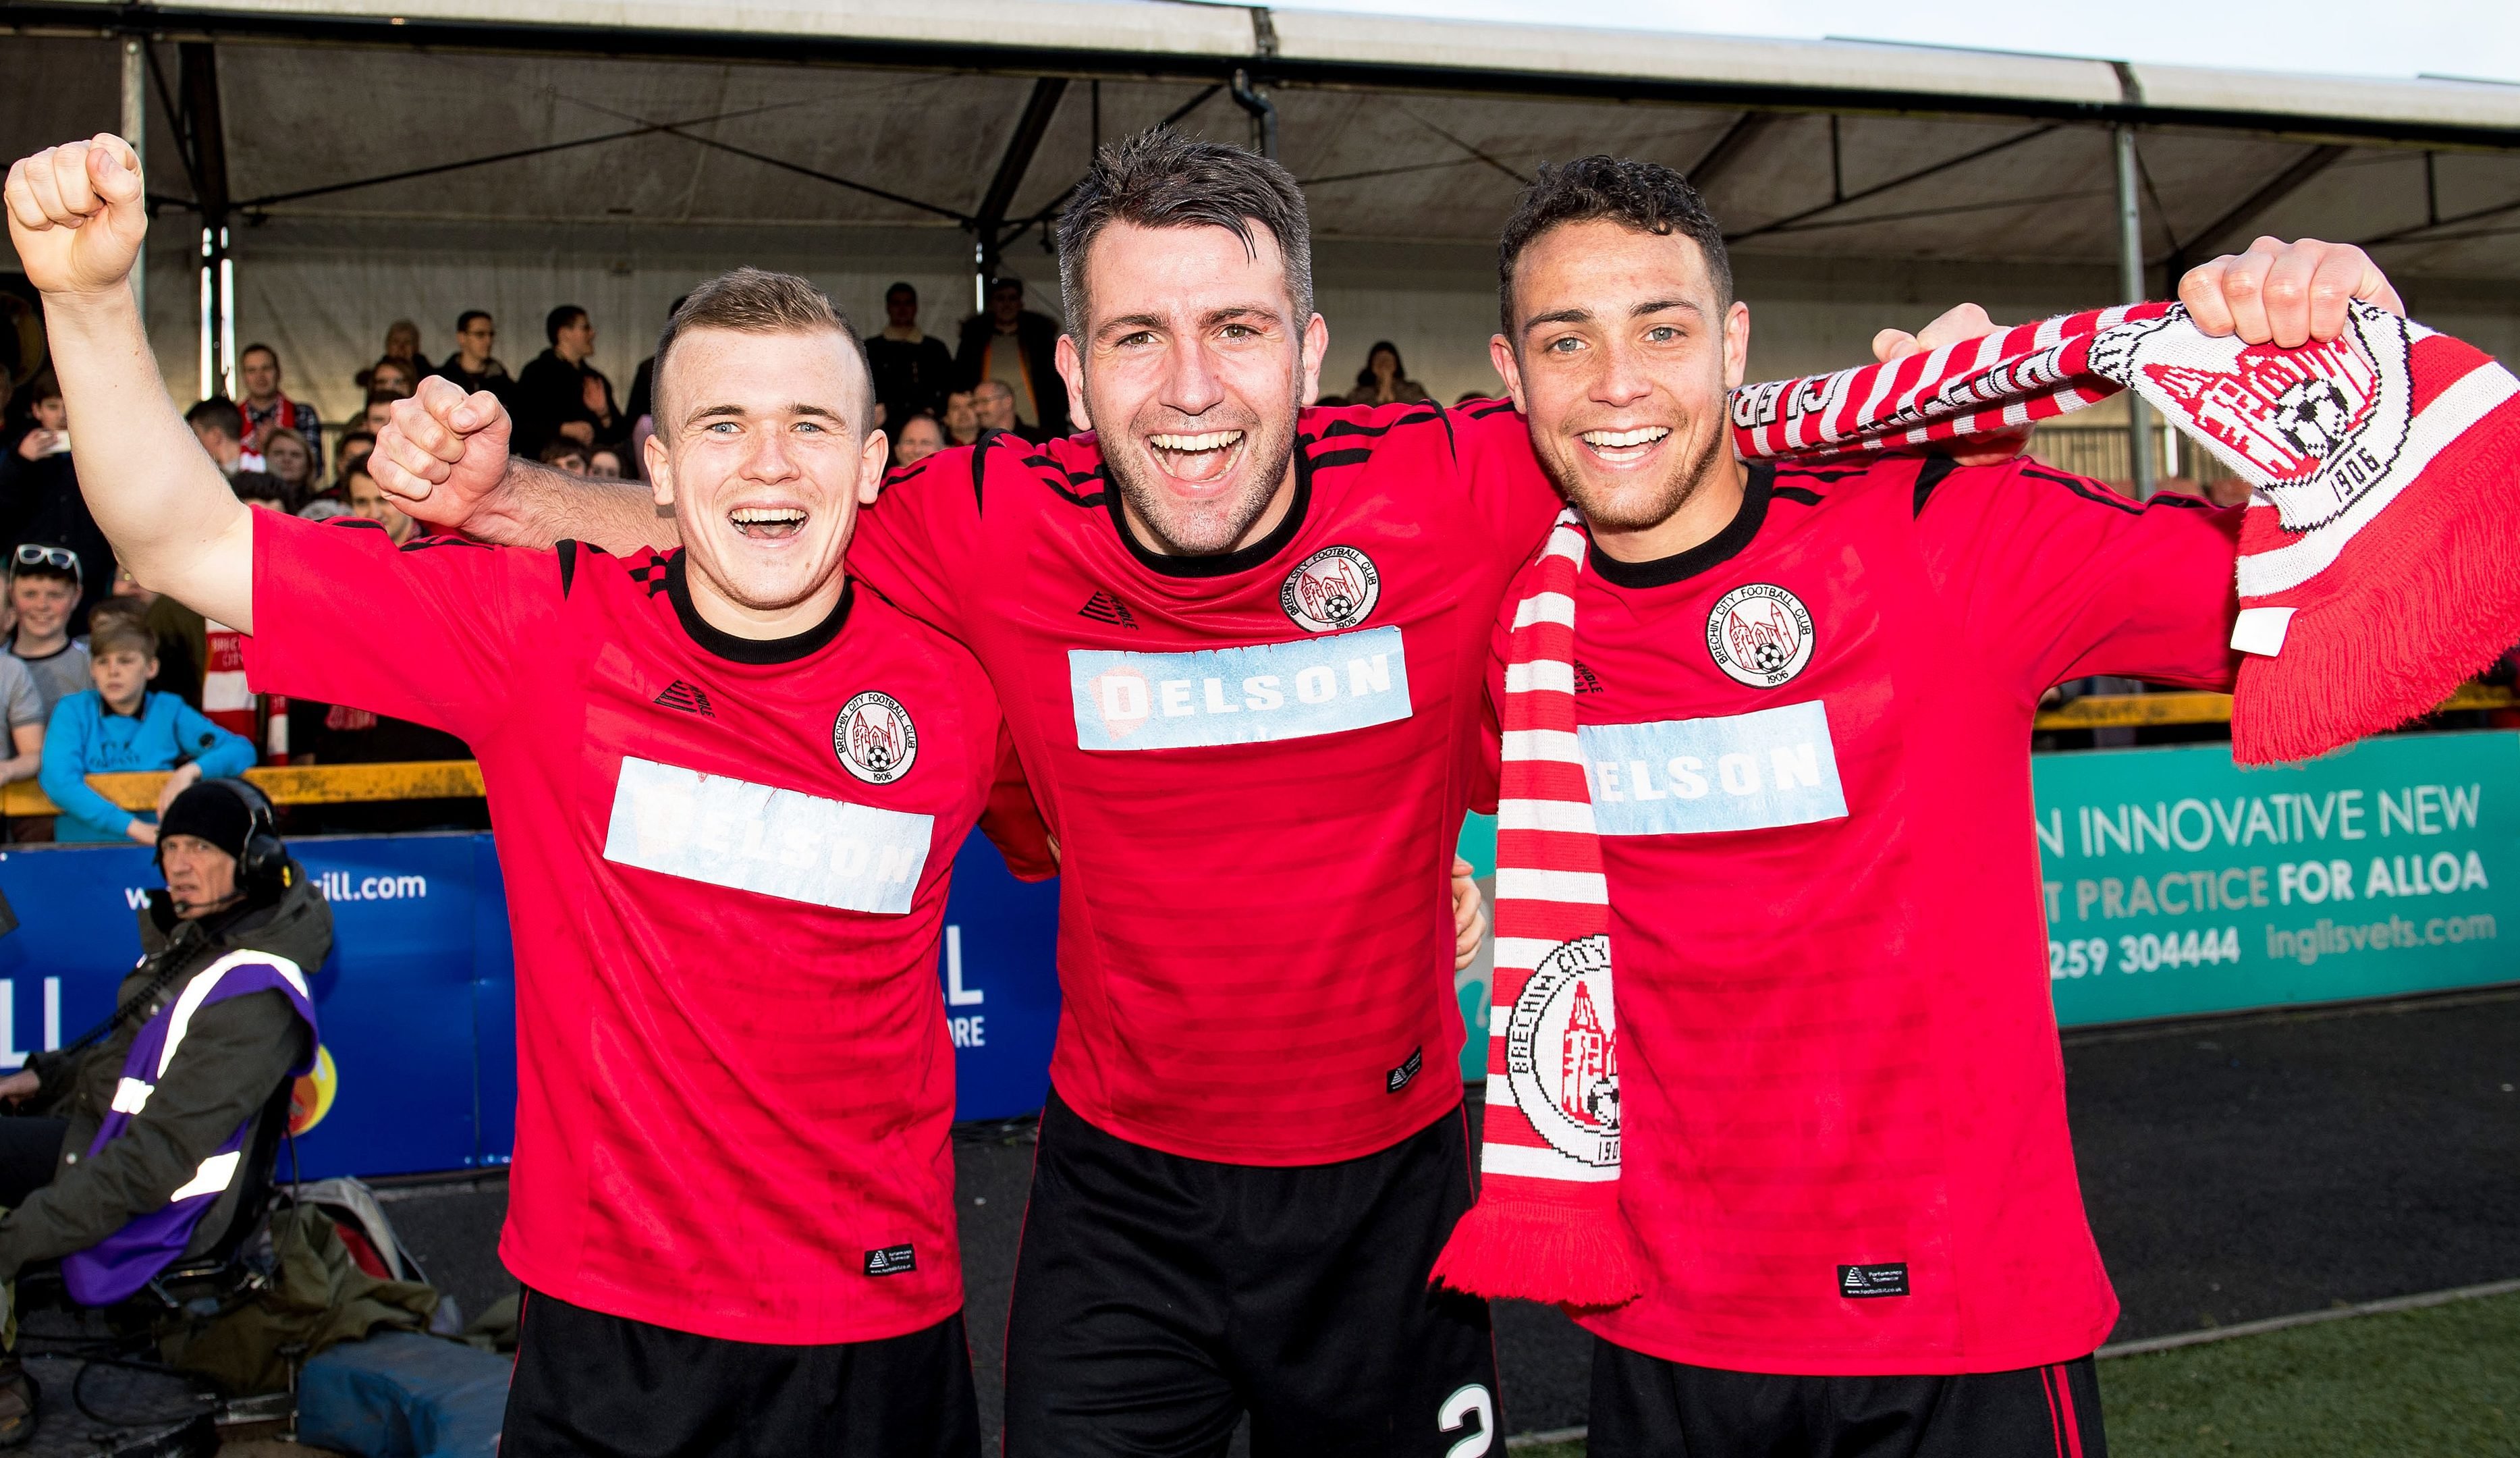 Brechin's Liam Watt, Paul McLean and James Dale at full time.